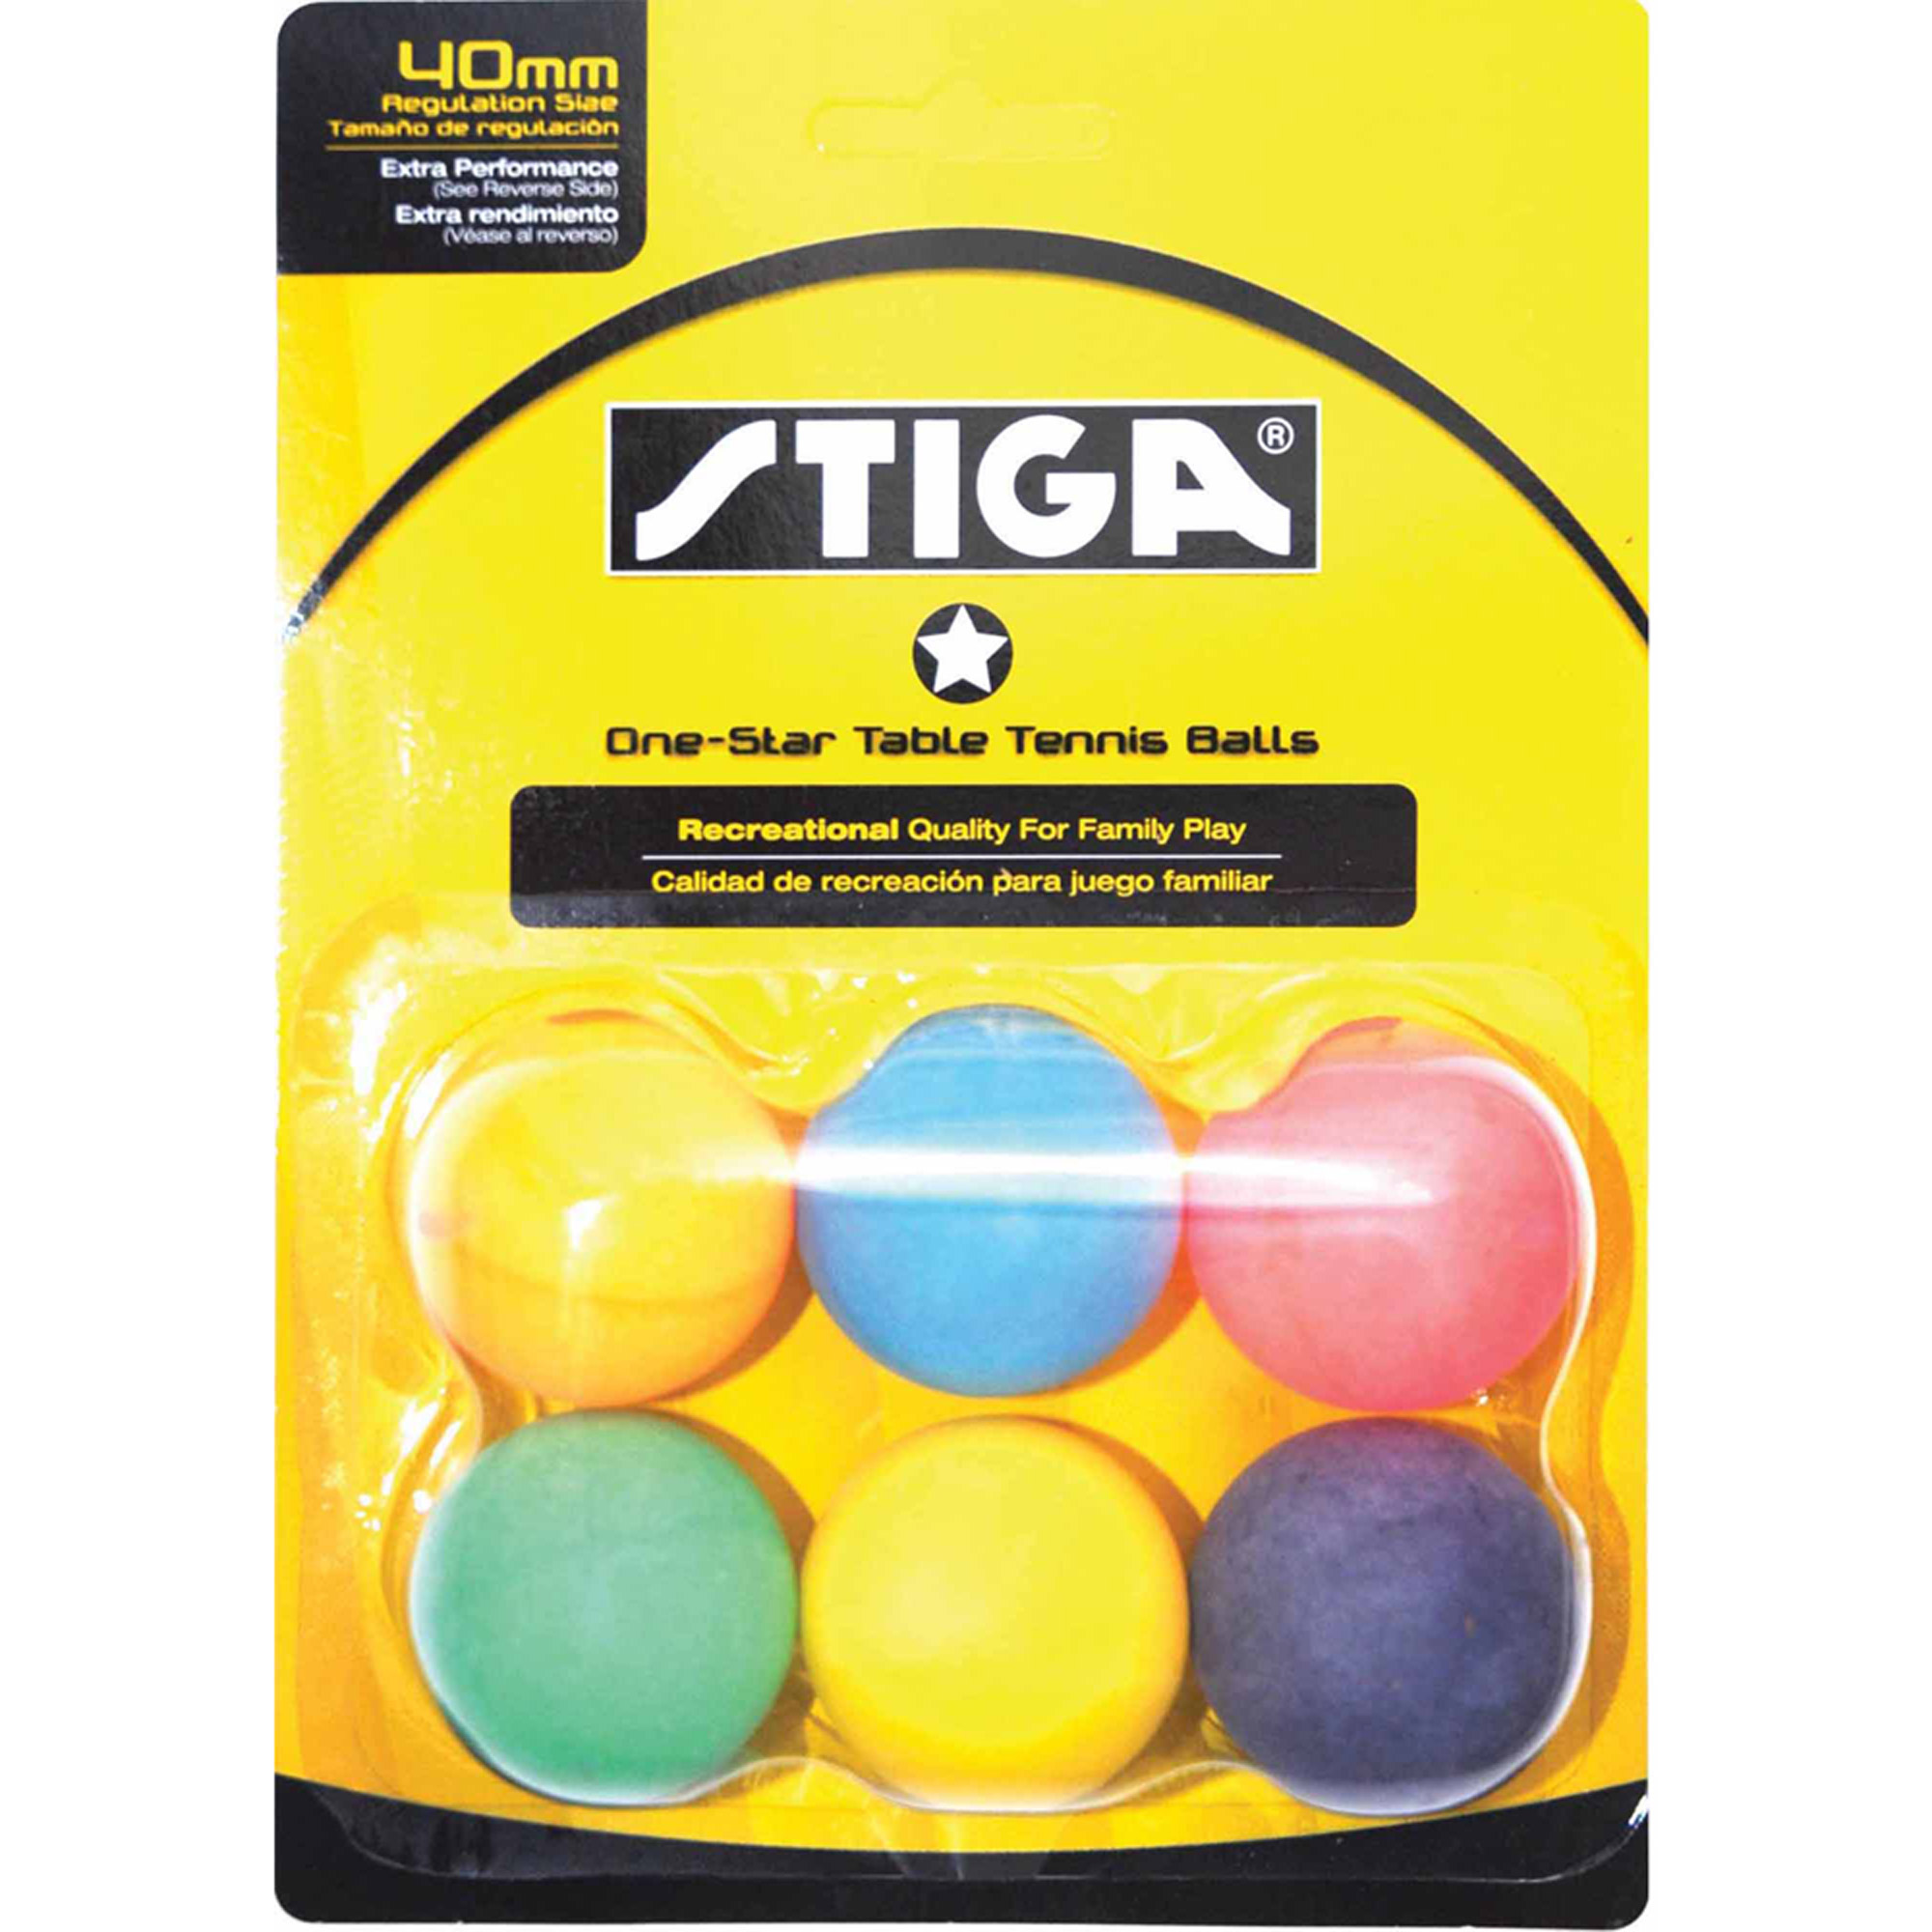 STIGA 1-Star Multicolor Table Tennis Balls, 6pk